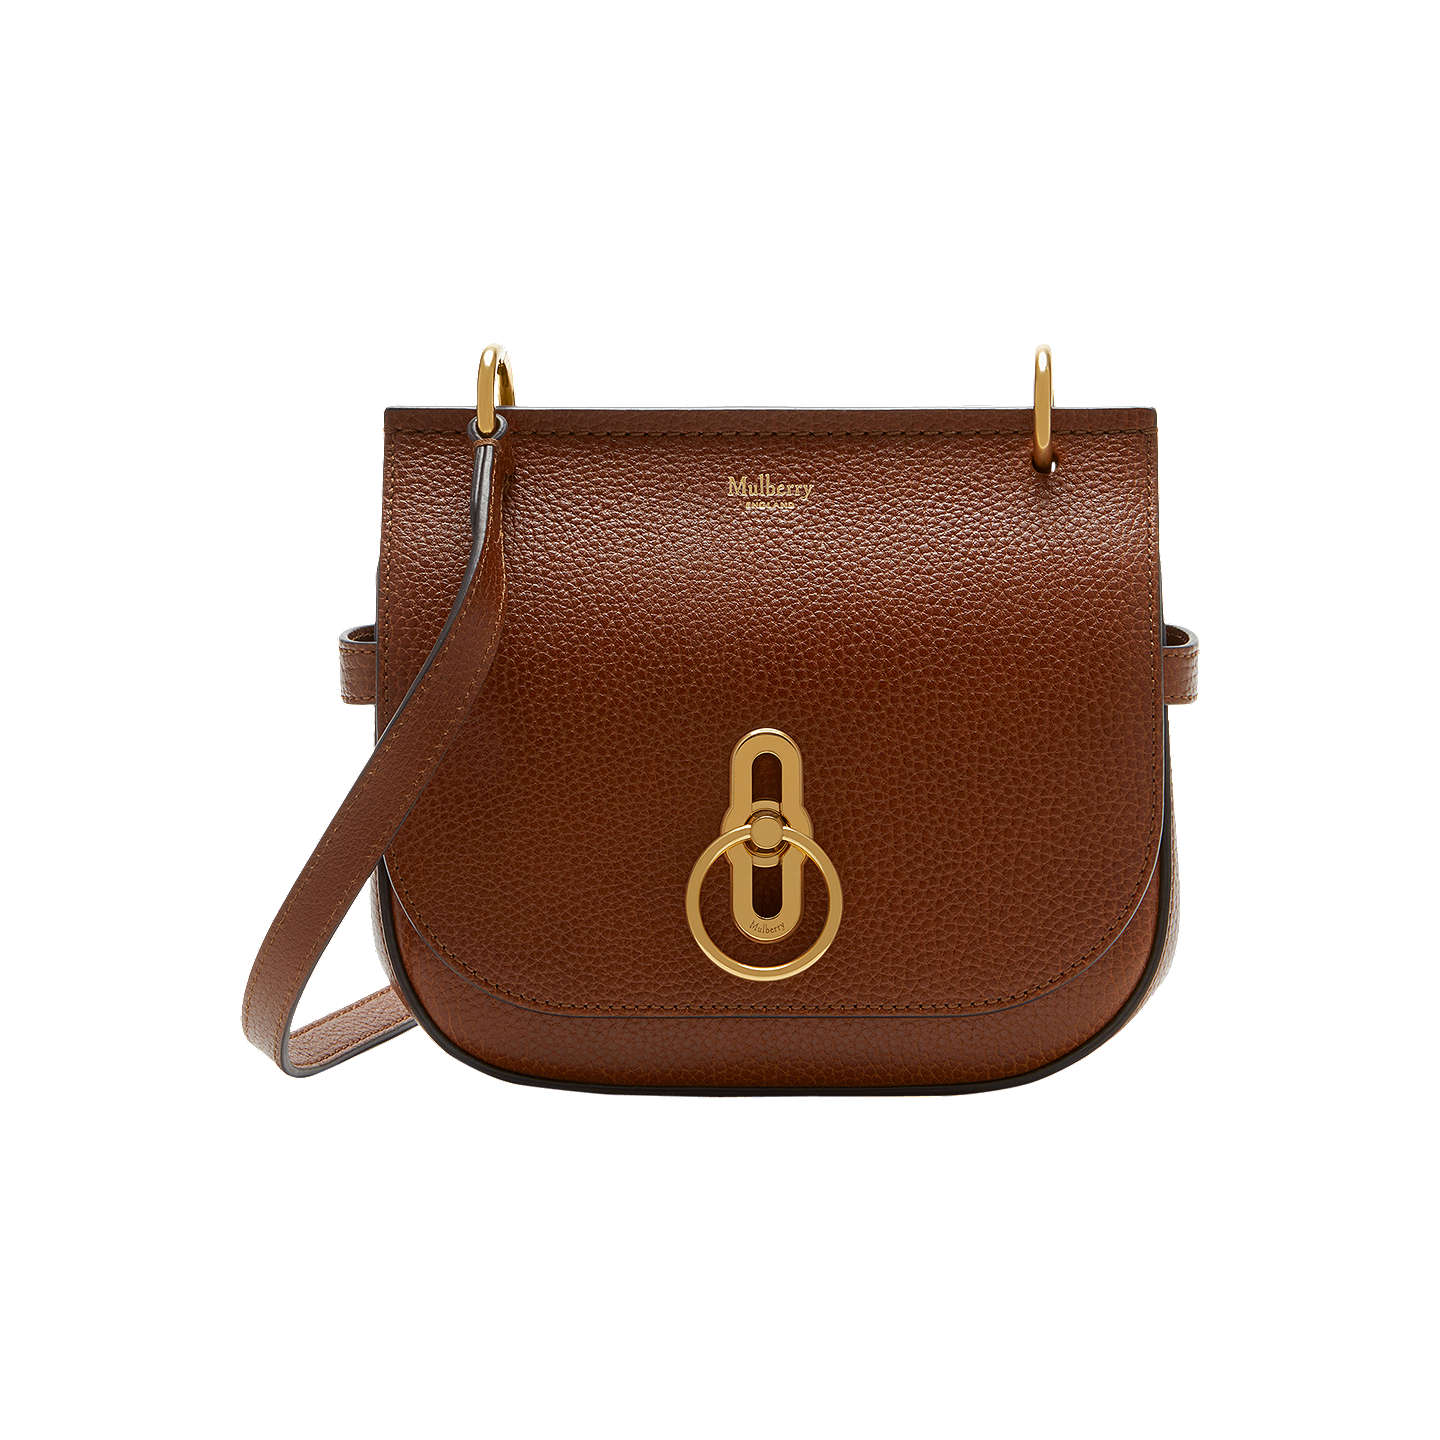 0f31c98b369 ... mulberry bayswater small classic grain leather 9f827 870ad; real  buymulberry amberley leather small satchel oak online at johnlewis 00c33  0930f